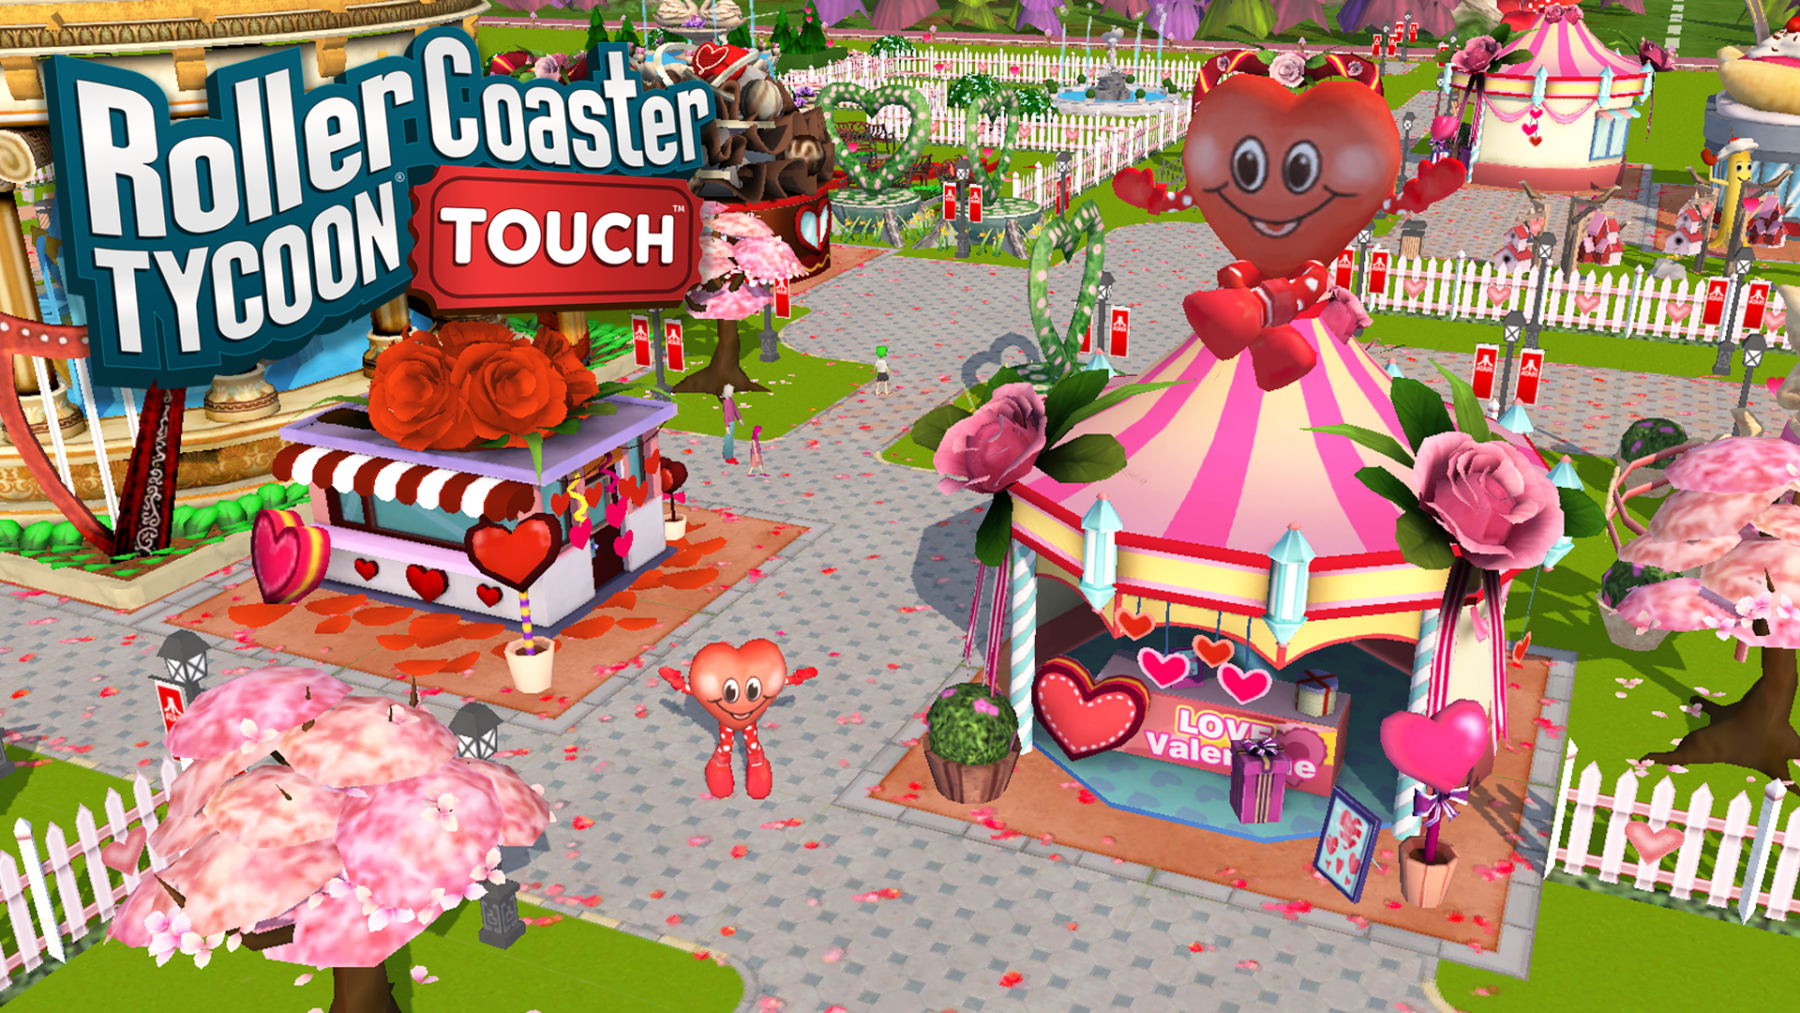 RollerCoaster Tycoon Touch in 2020 Roller coaster